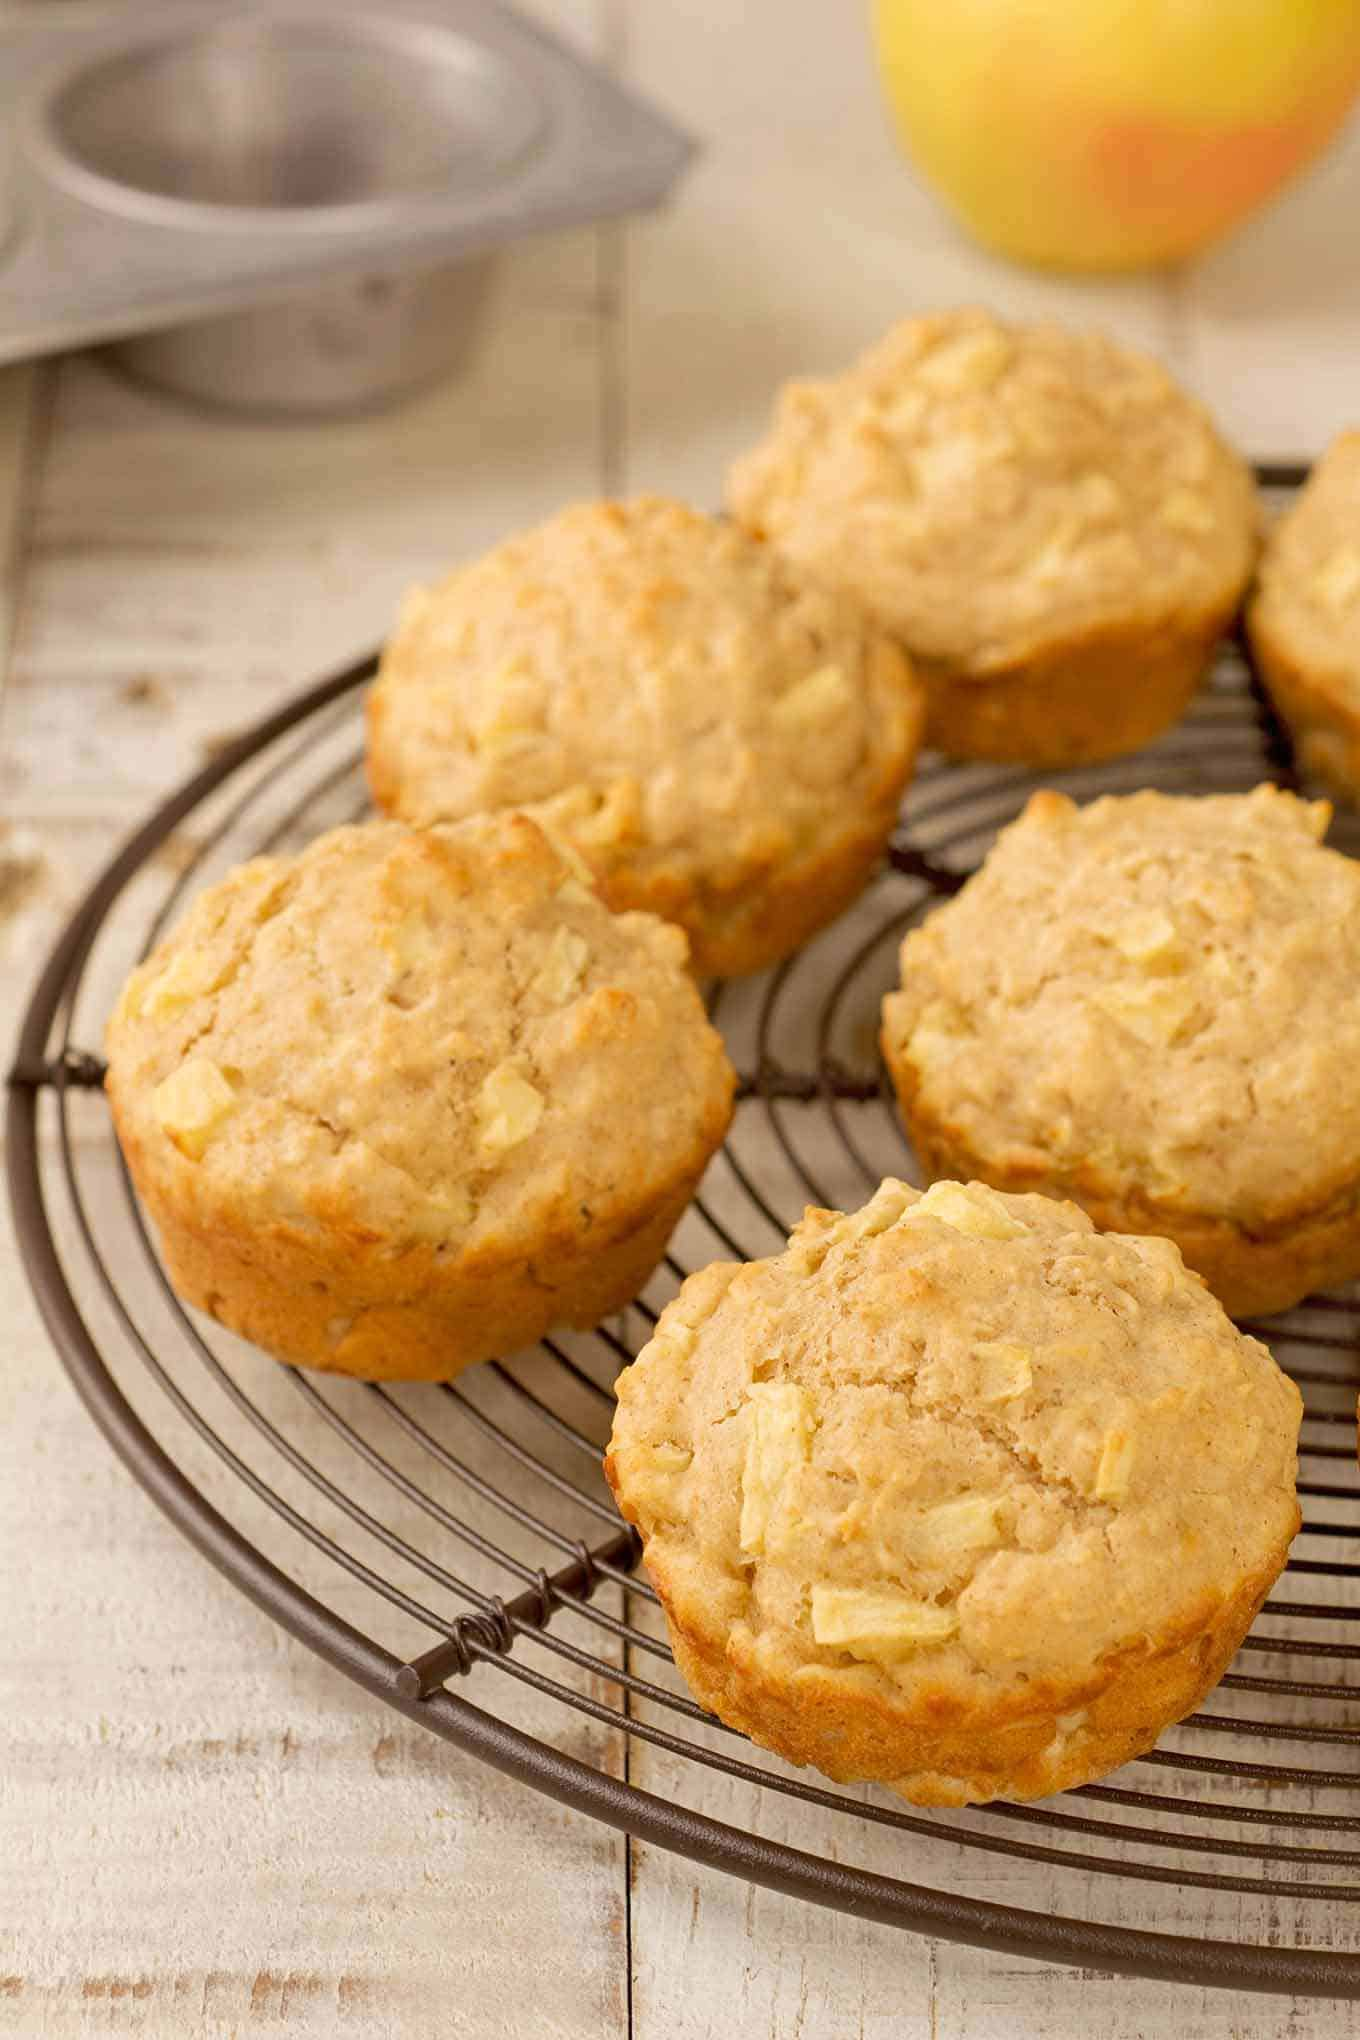 Apple oatmeal muffins on a cooling rack